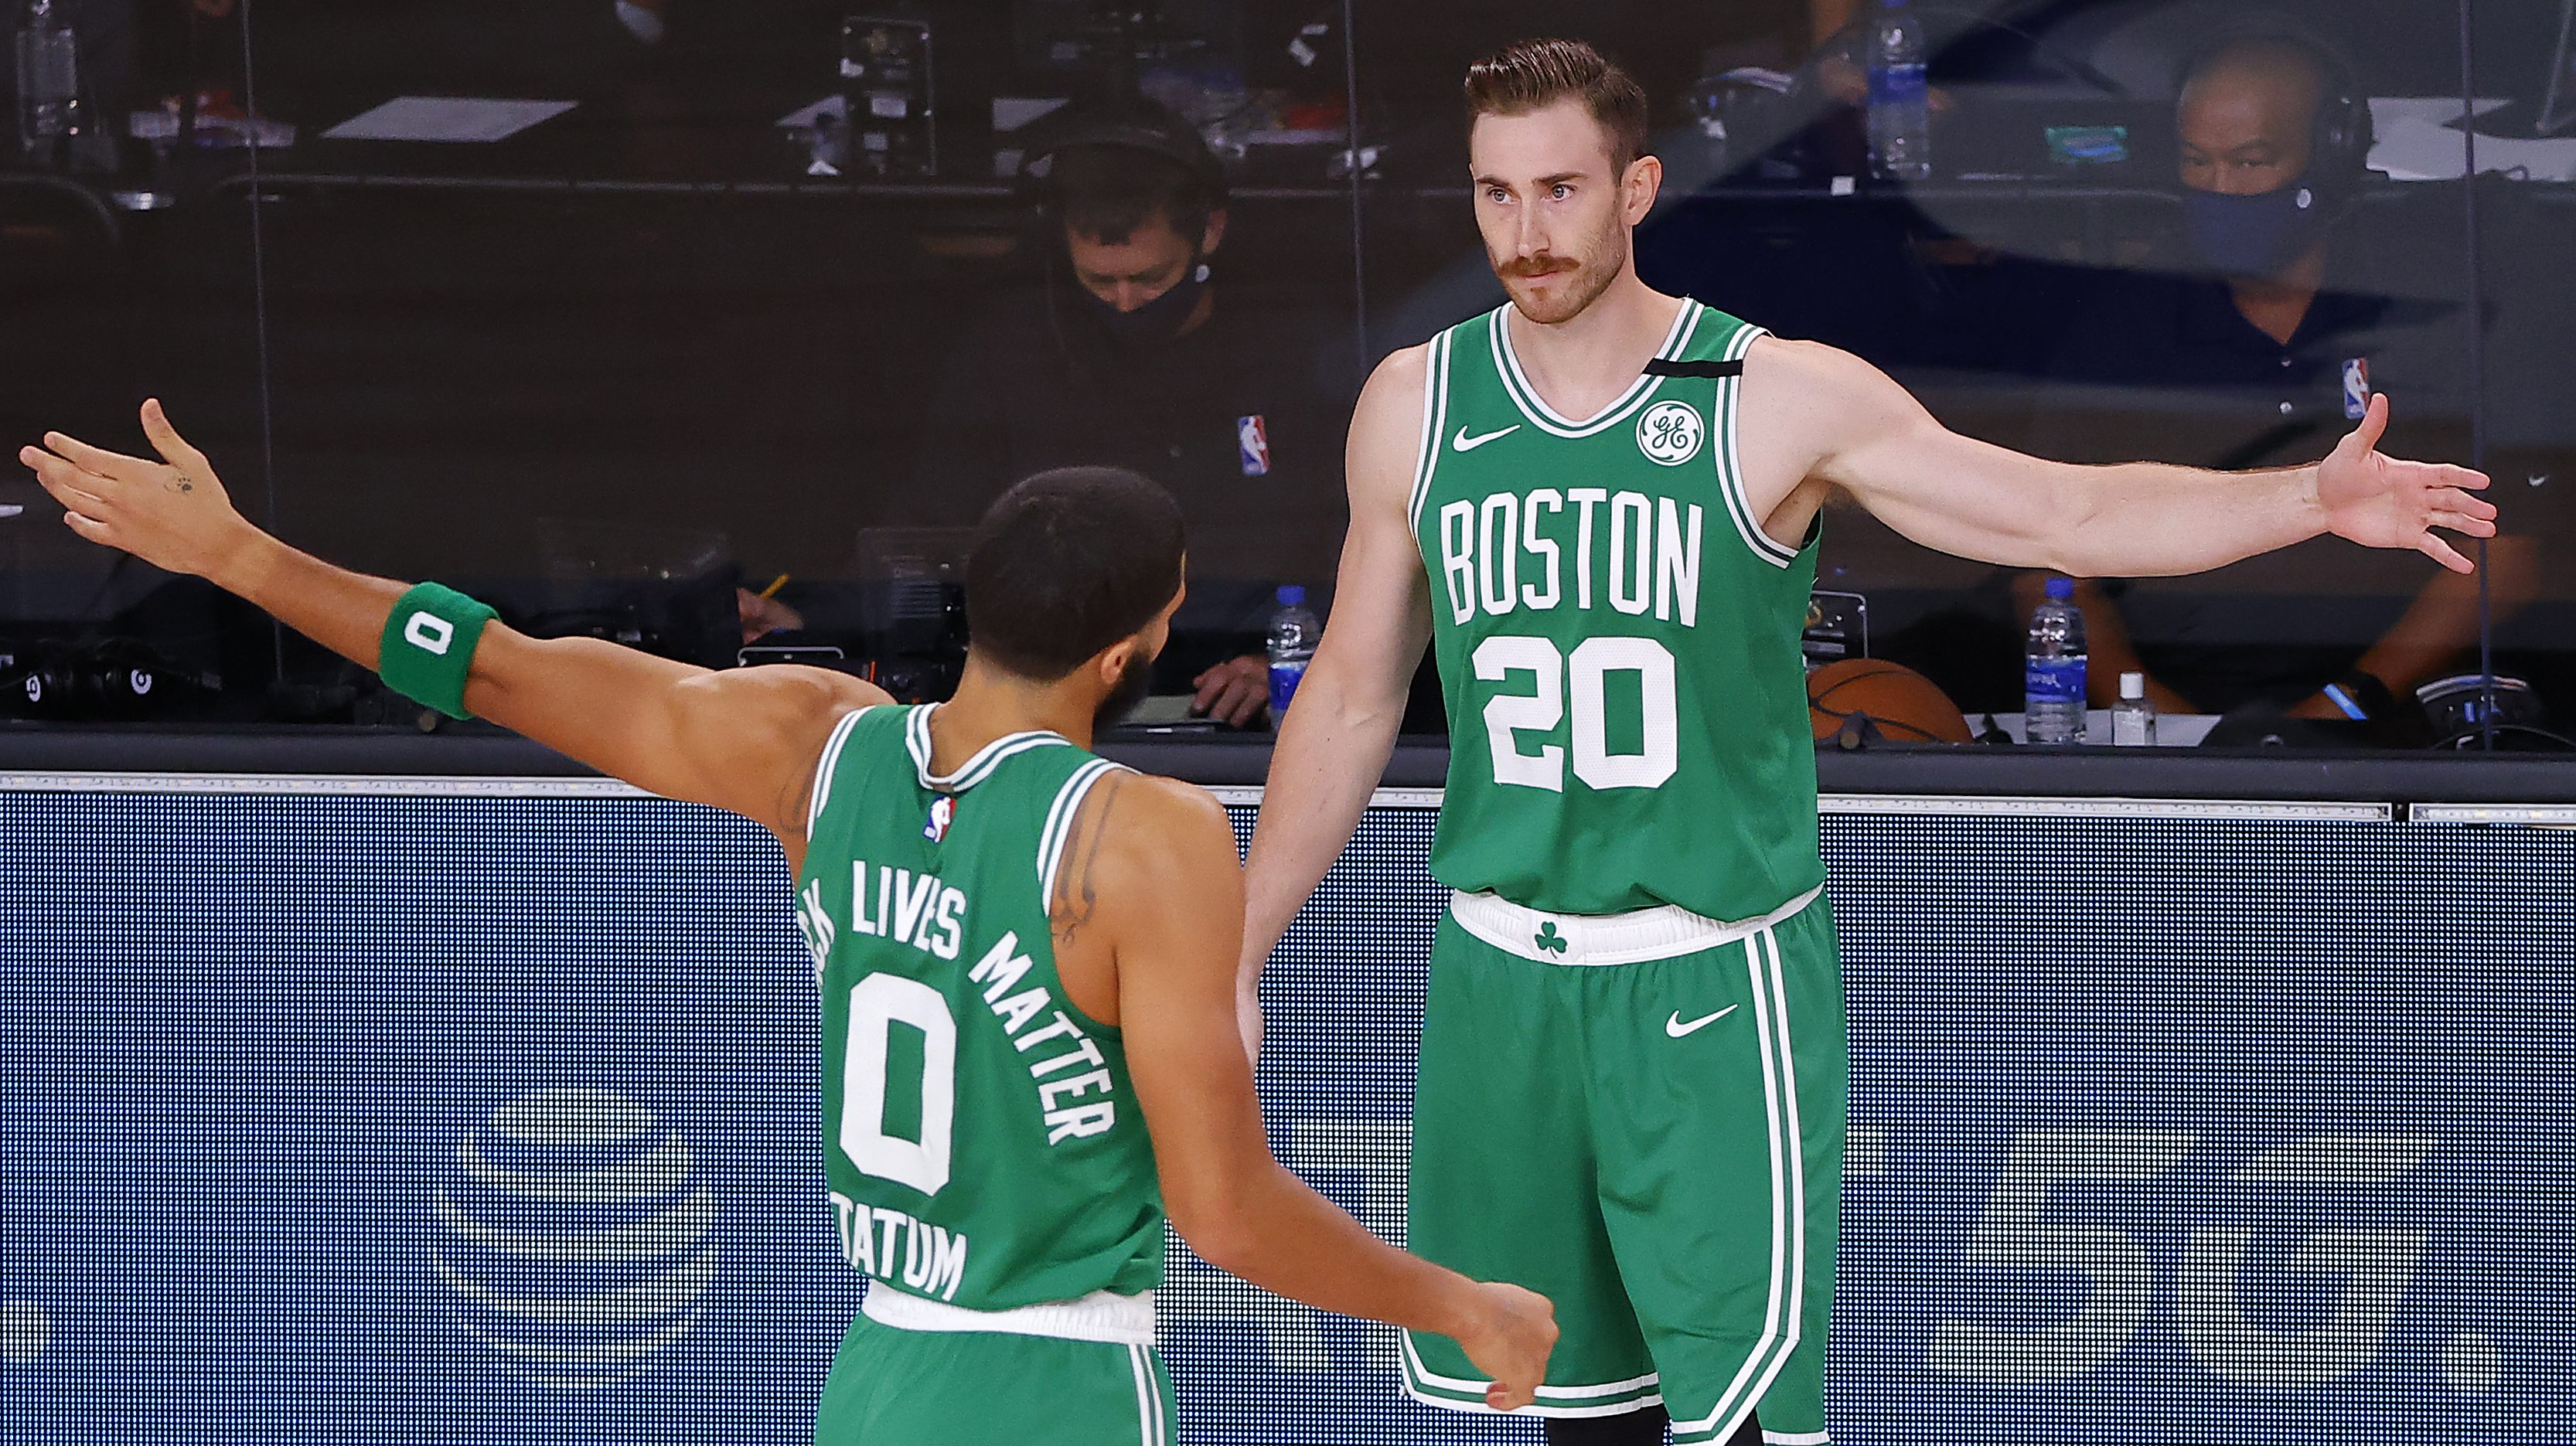 Gordon Hayward and Jayson Tatum greet each other on the sideline of a Celtics playoff game.